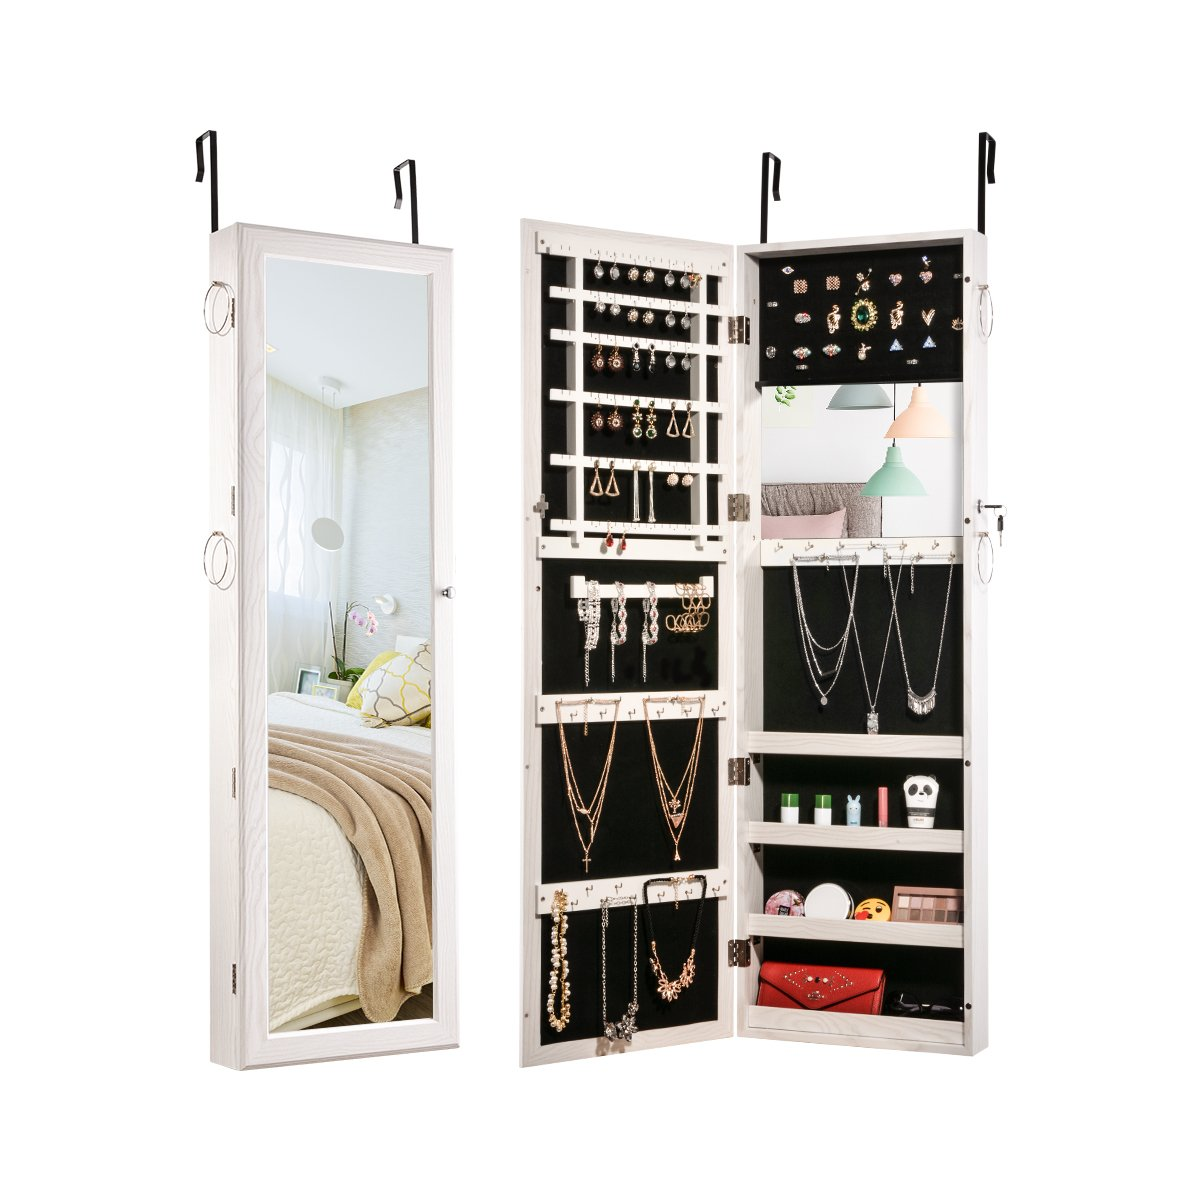 Sunix Jewelry Cabinet Lockable Jewelry Armoire Organizer with Built-in Make up Mirror White